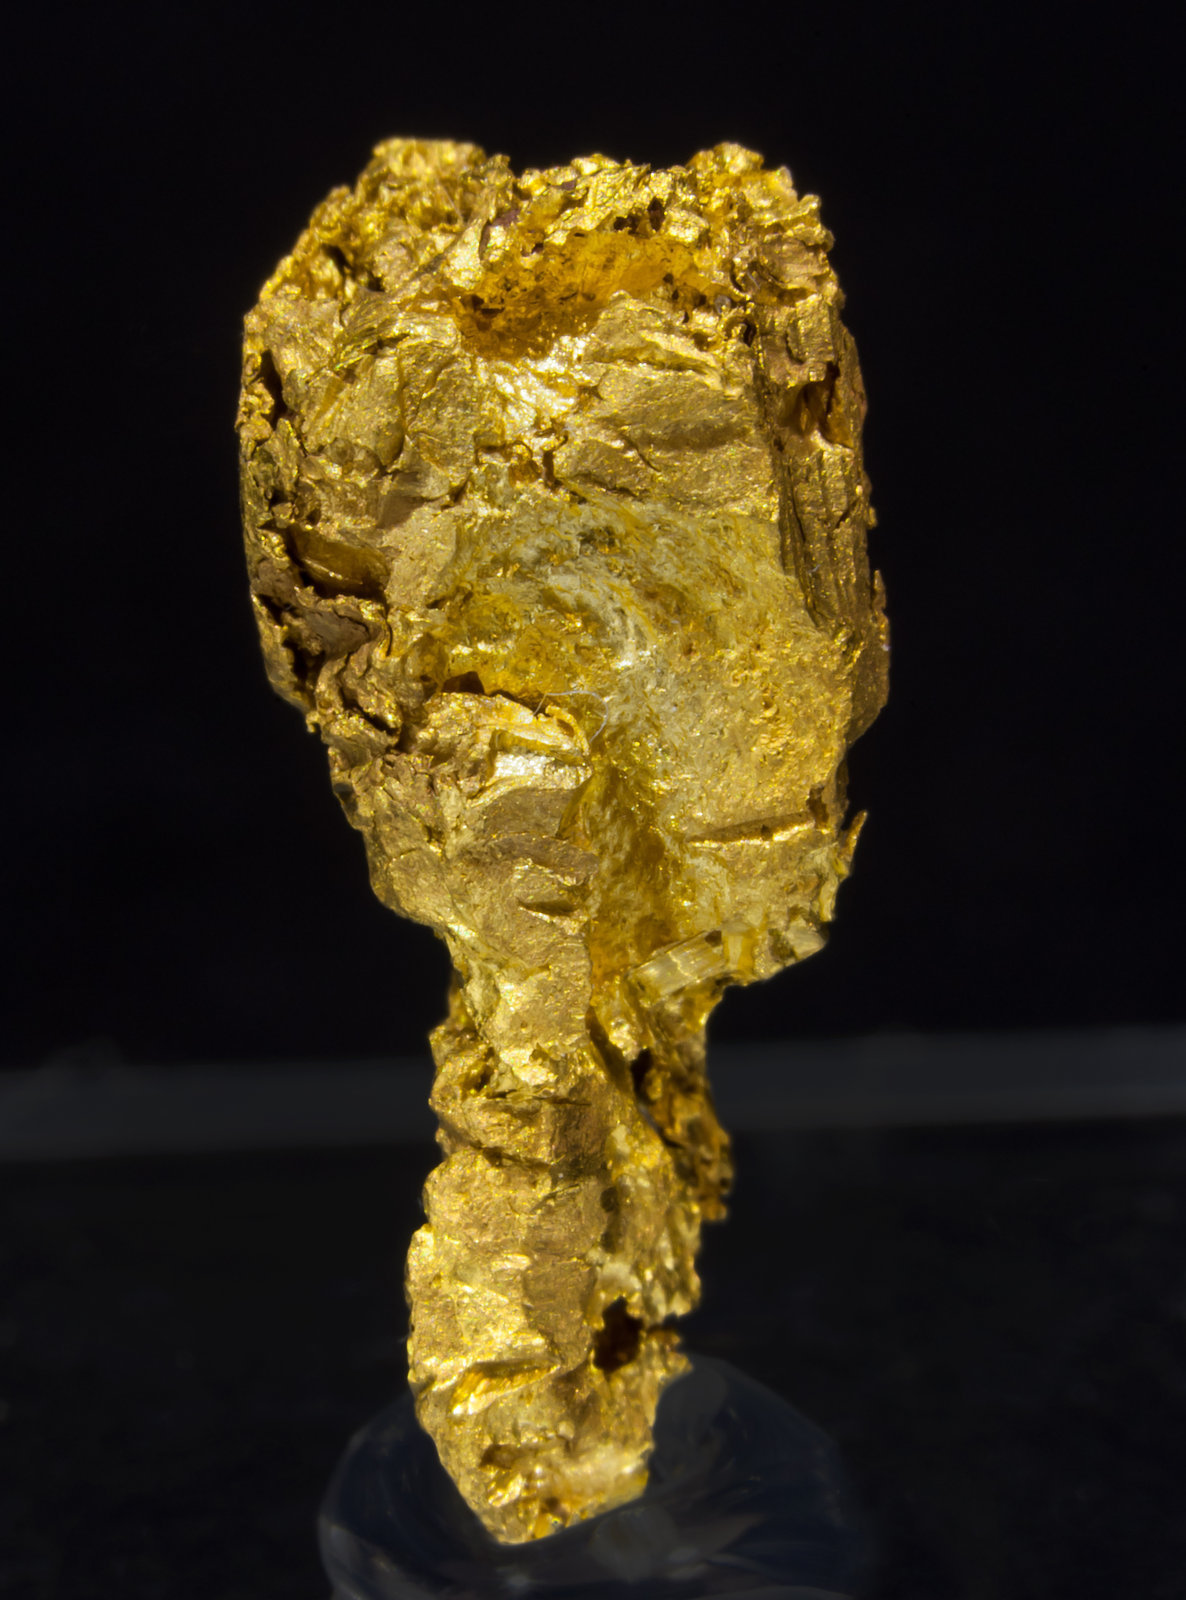 specimens/s_imagesAI5/Gold-MC1AI5f.jpg